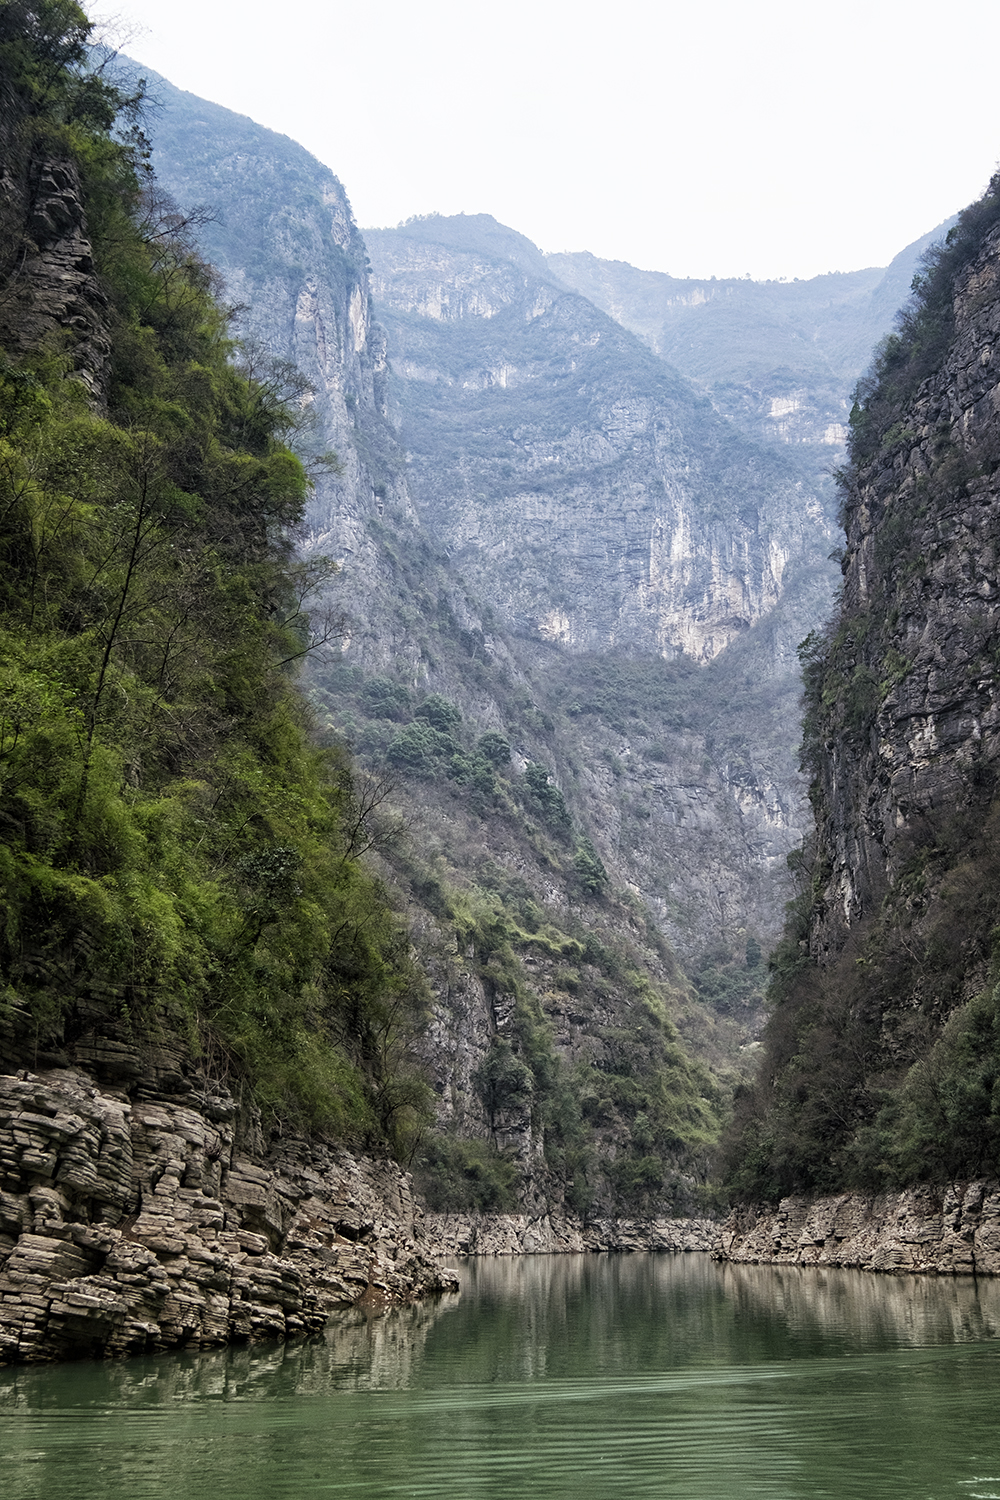 In the Wu Gorge